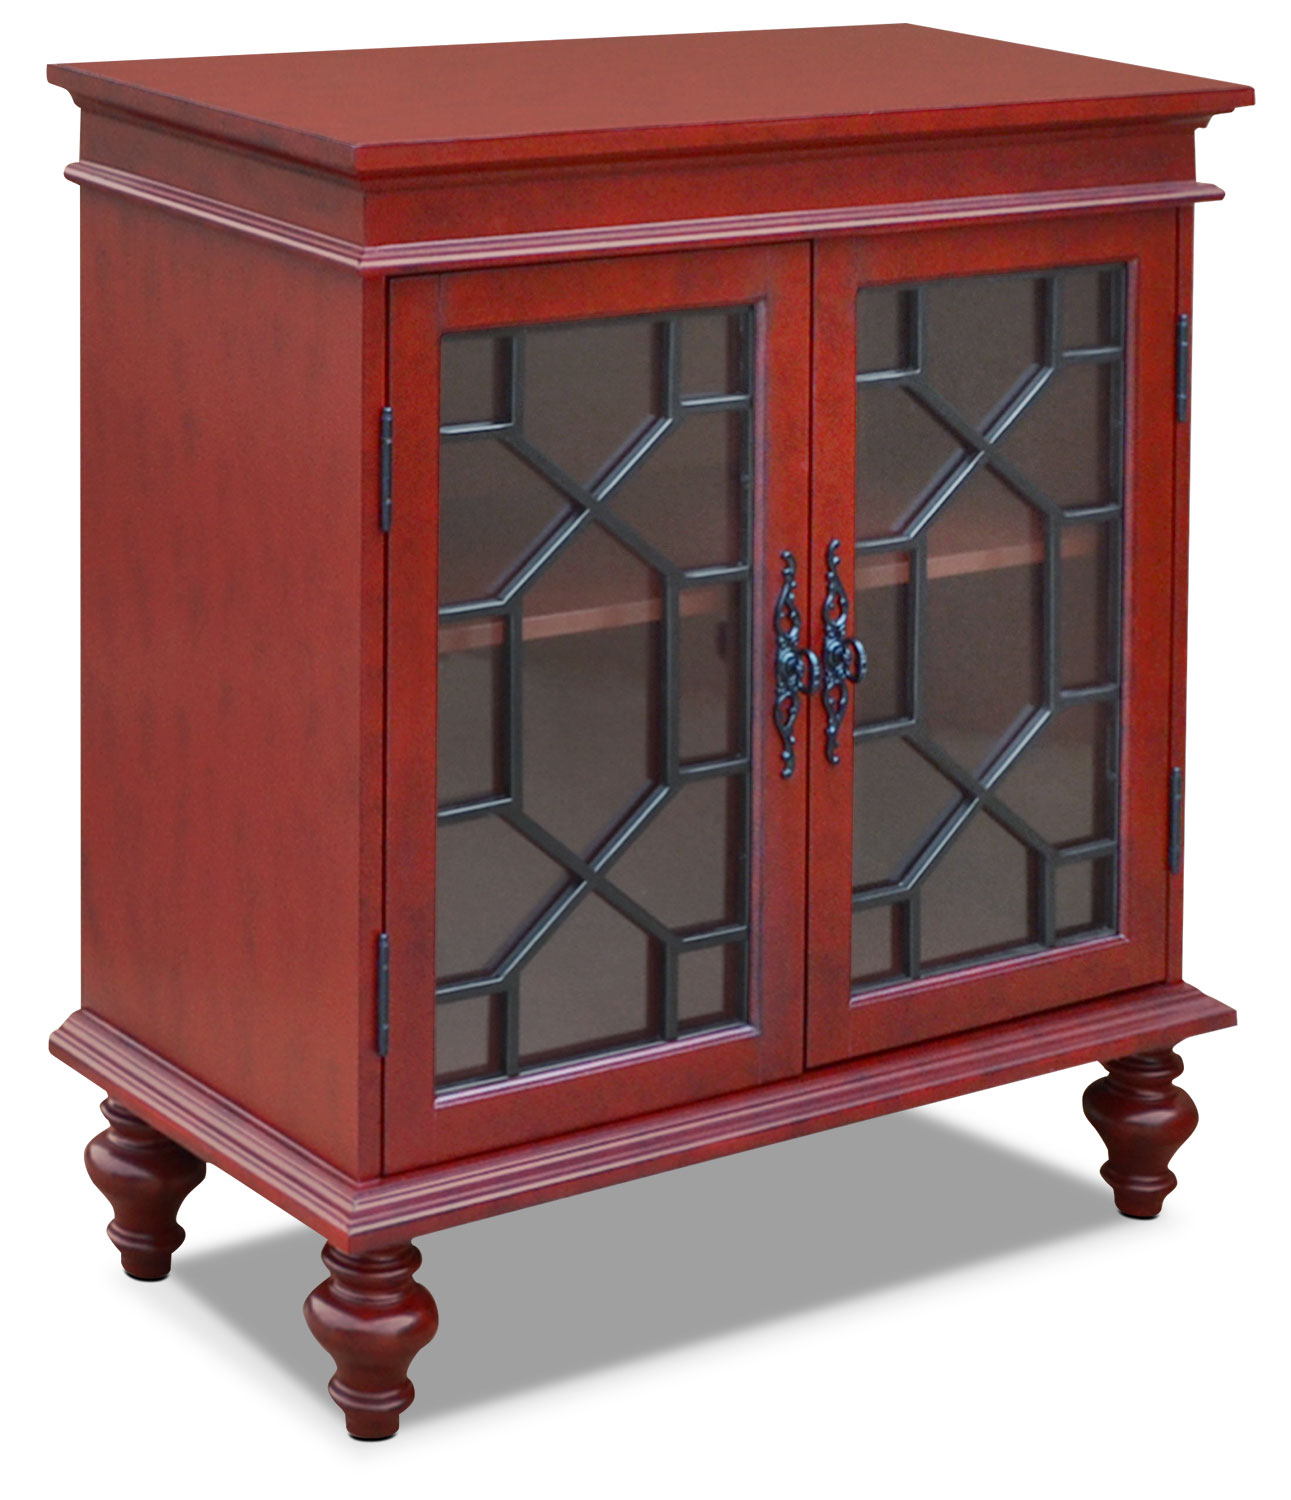 Rigolet small accent cabinet red the brick for Petite table decorative